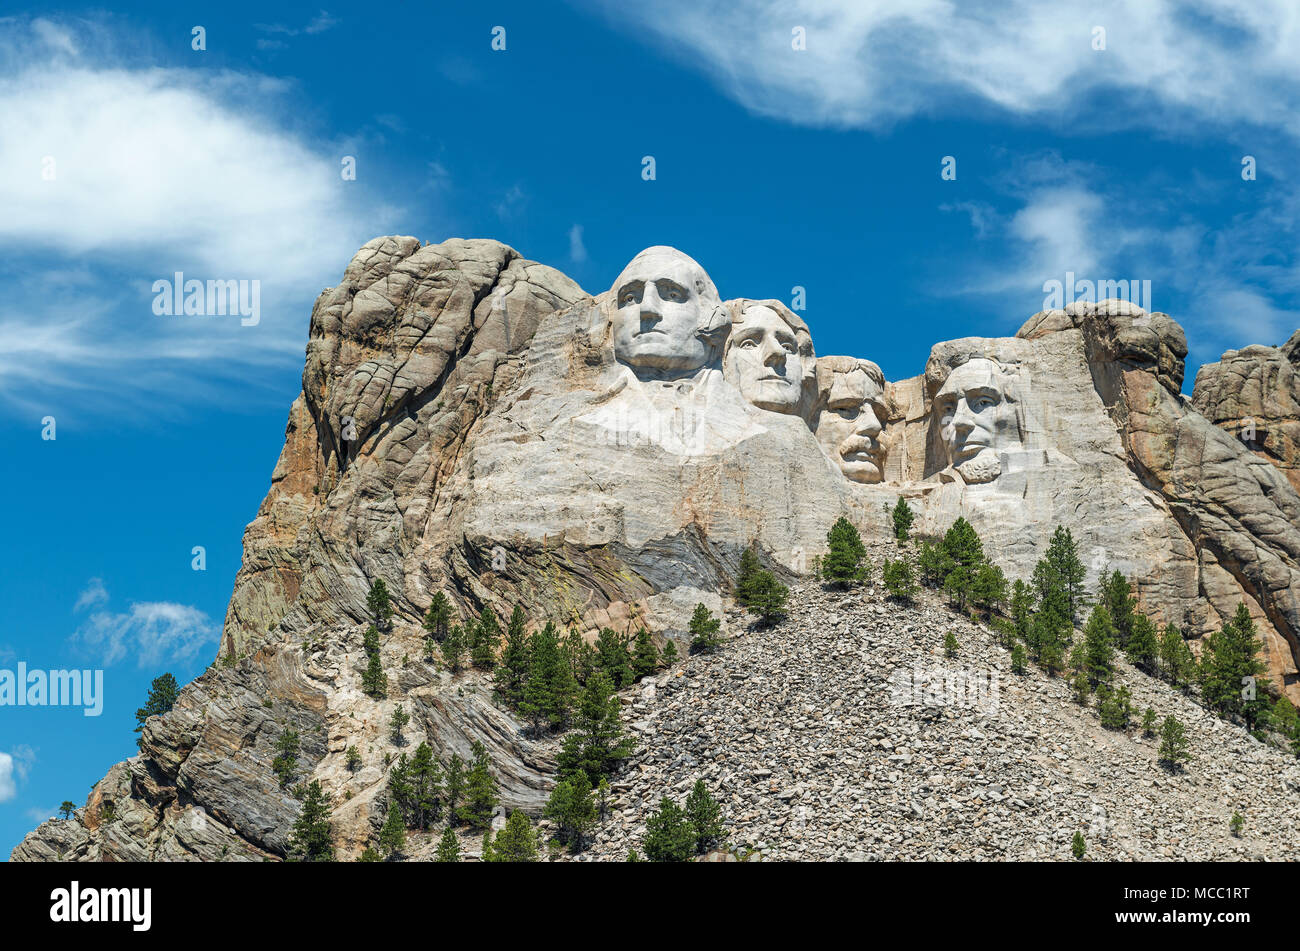 Complete wide angle view of Mount Rushmore national monument with the surrounding forest and nature near Rapid City in South Dakota, USA. - Stock Image